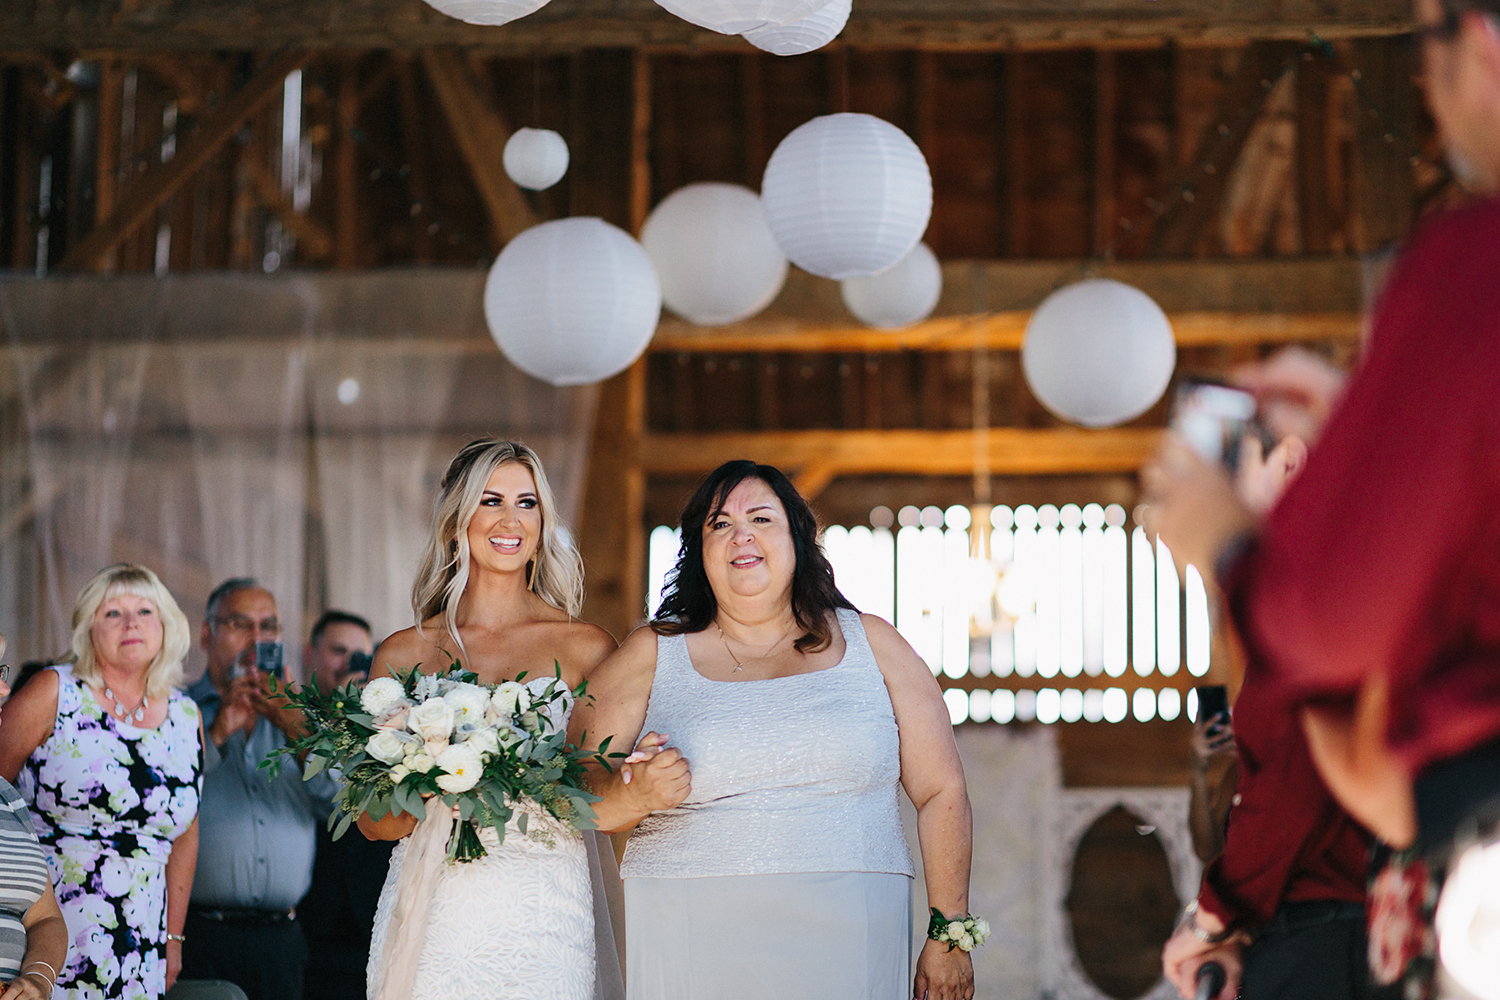 Photojournalistic-Wedding-Photographers-in-Toronto-Candid-Natural-Dowswell-Barn-Wedding-Rustic-GTA-Muskoka-Farm-ceremony-groom-waiting-for-bride-emotional-crying-love-actually-bride-in-lace-dress-smiling.jpg